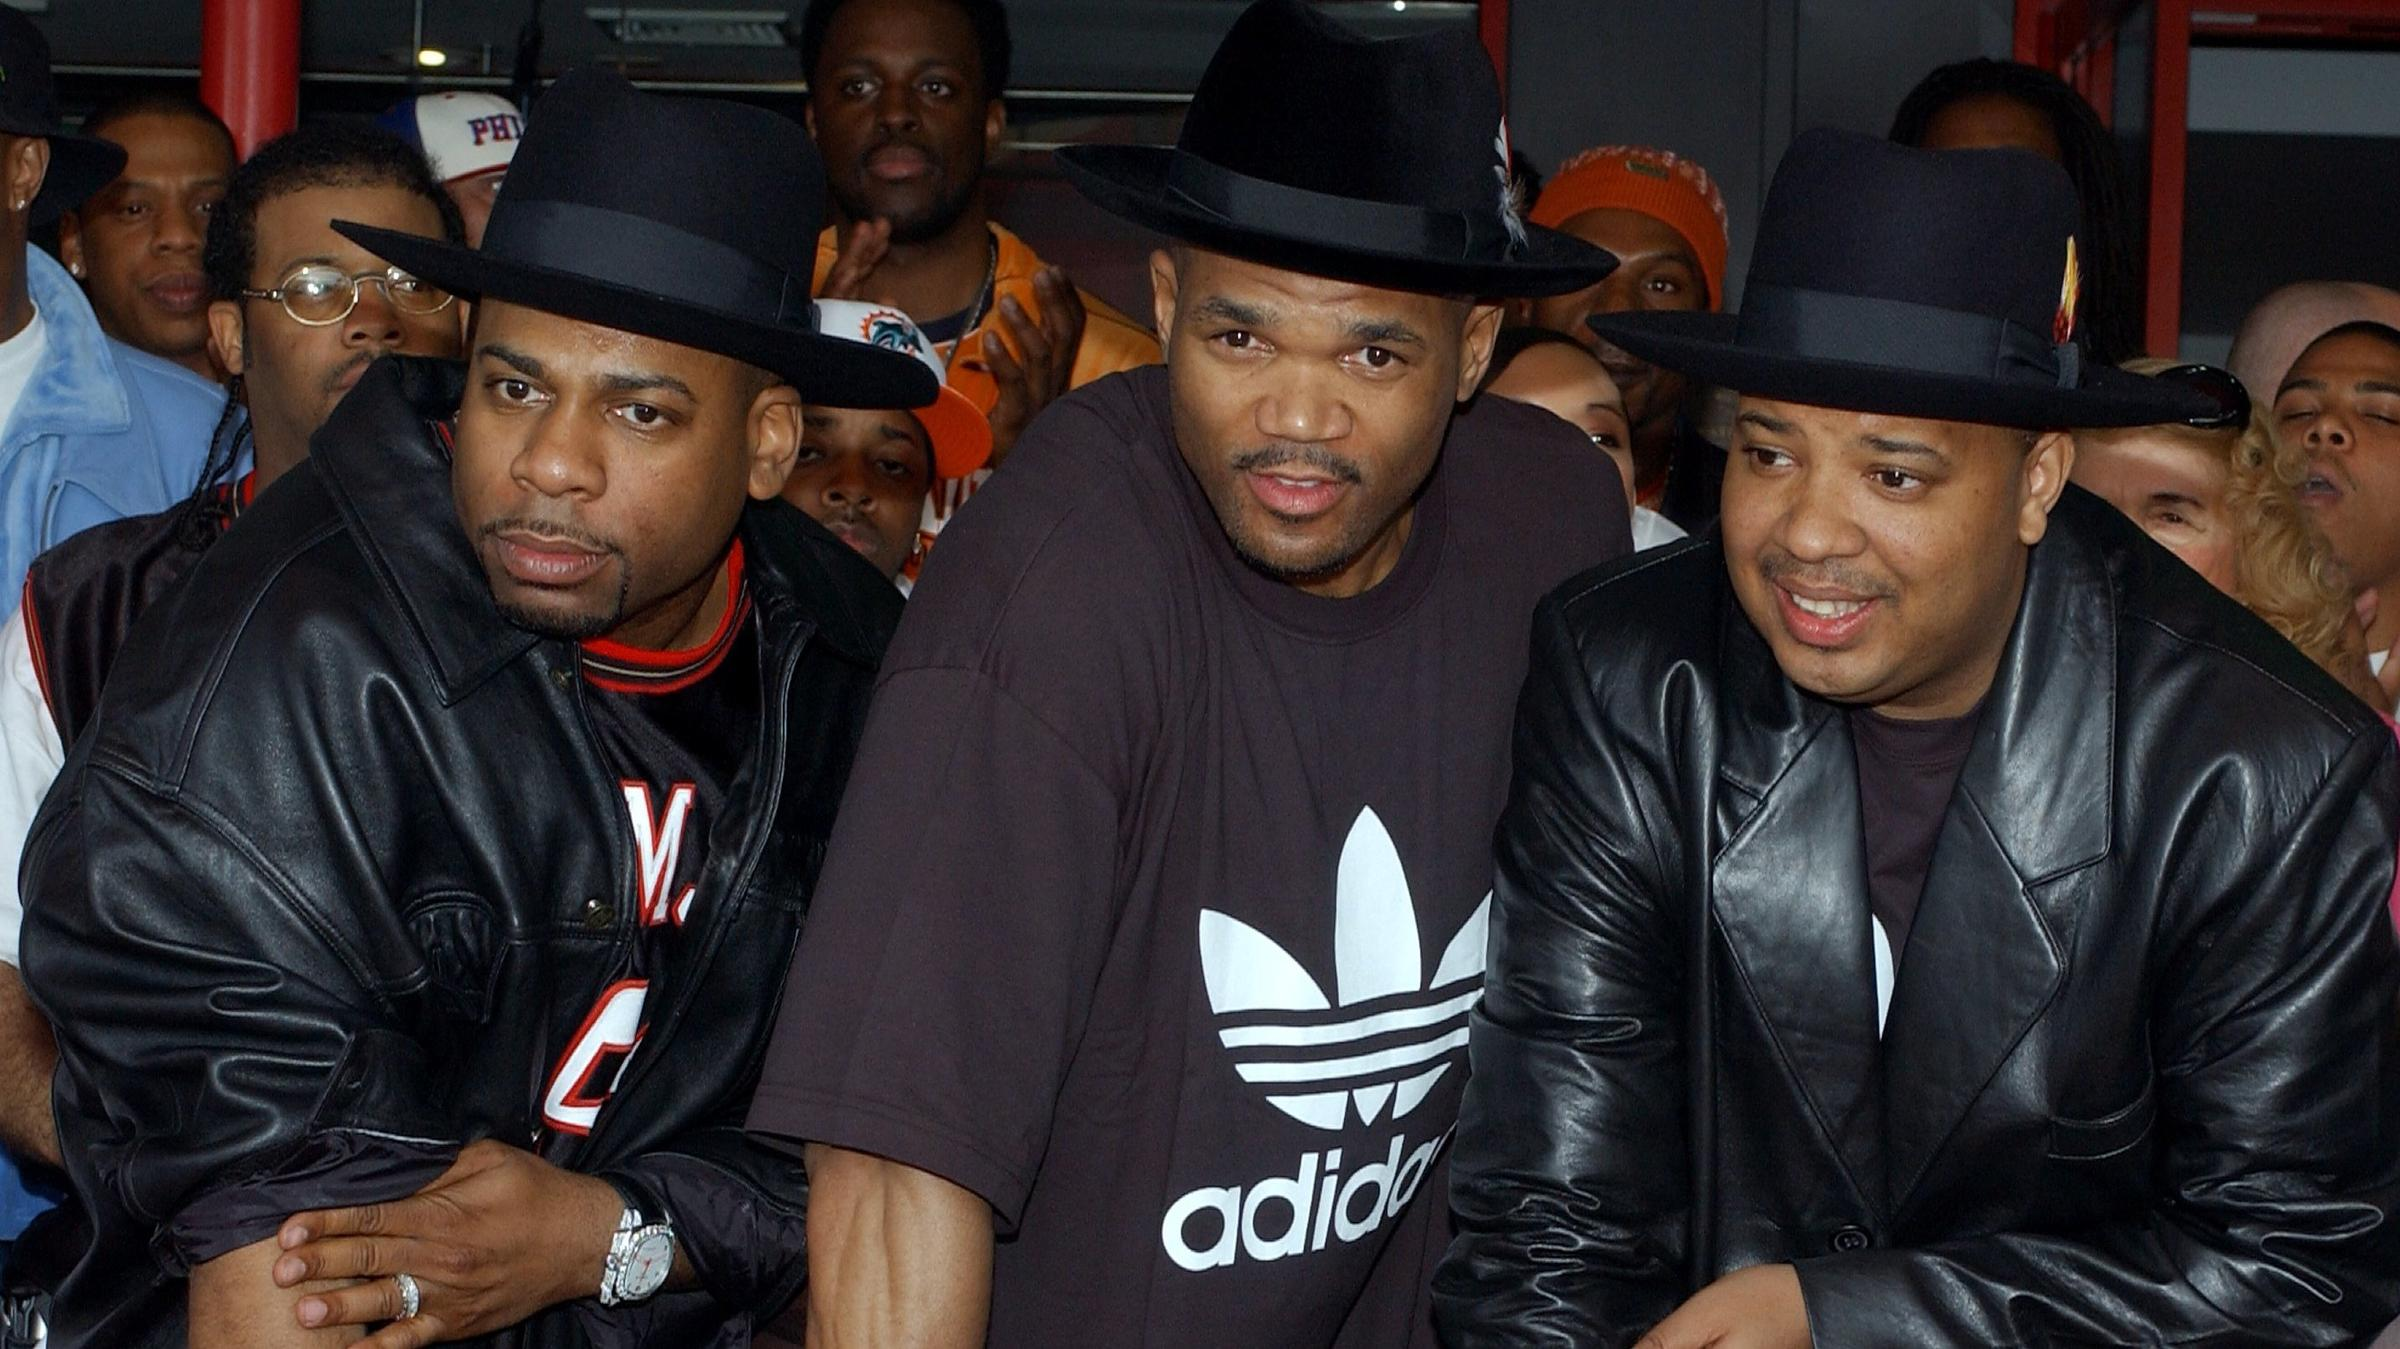 Two found guilty in Long Unsolved Case of Jason Mizell aka Jam Master Jay